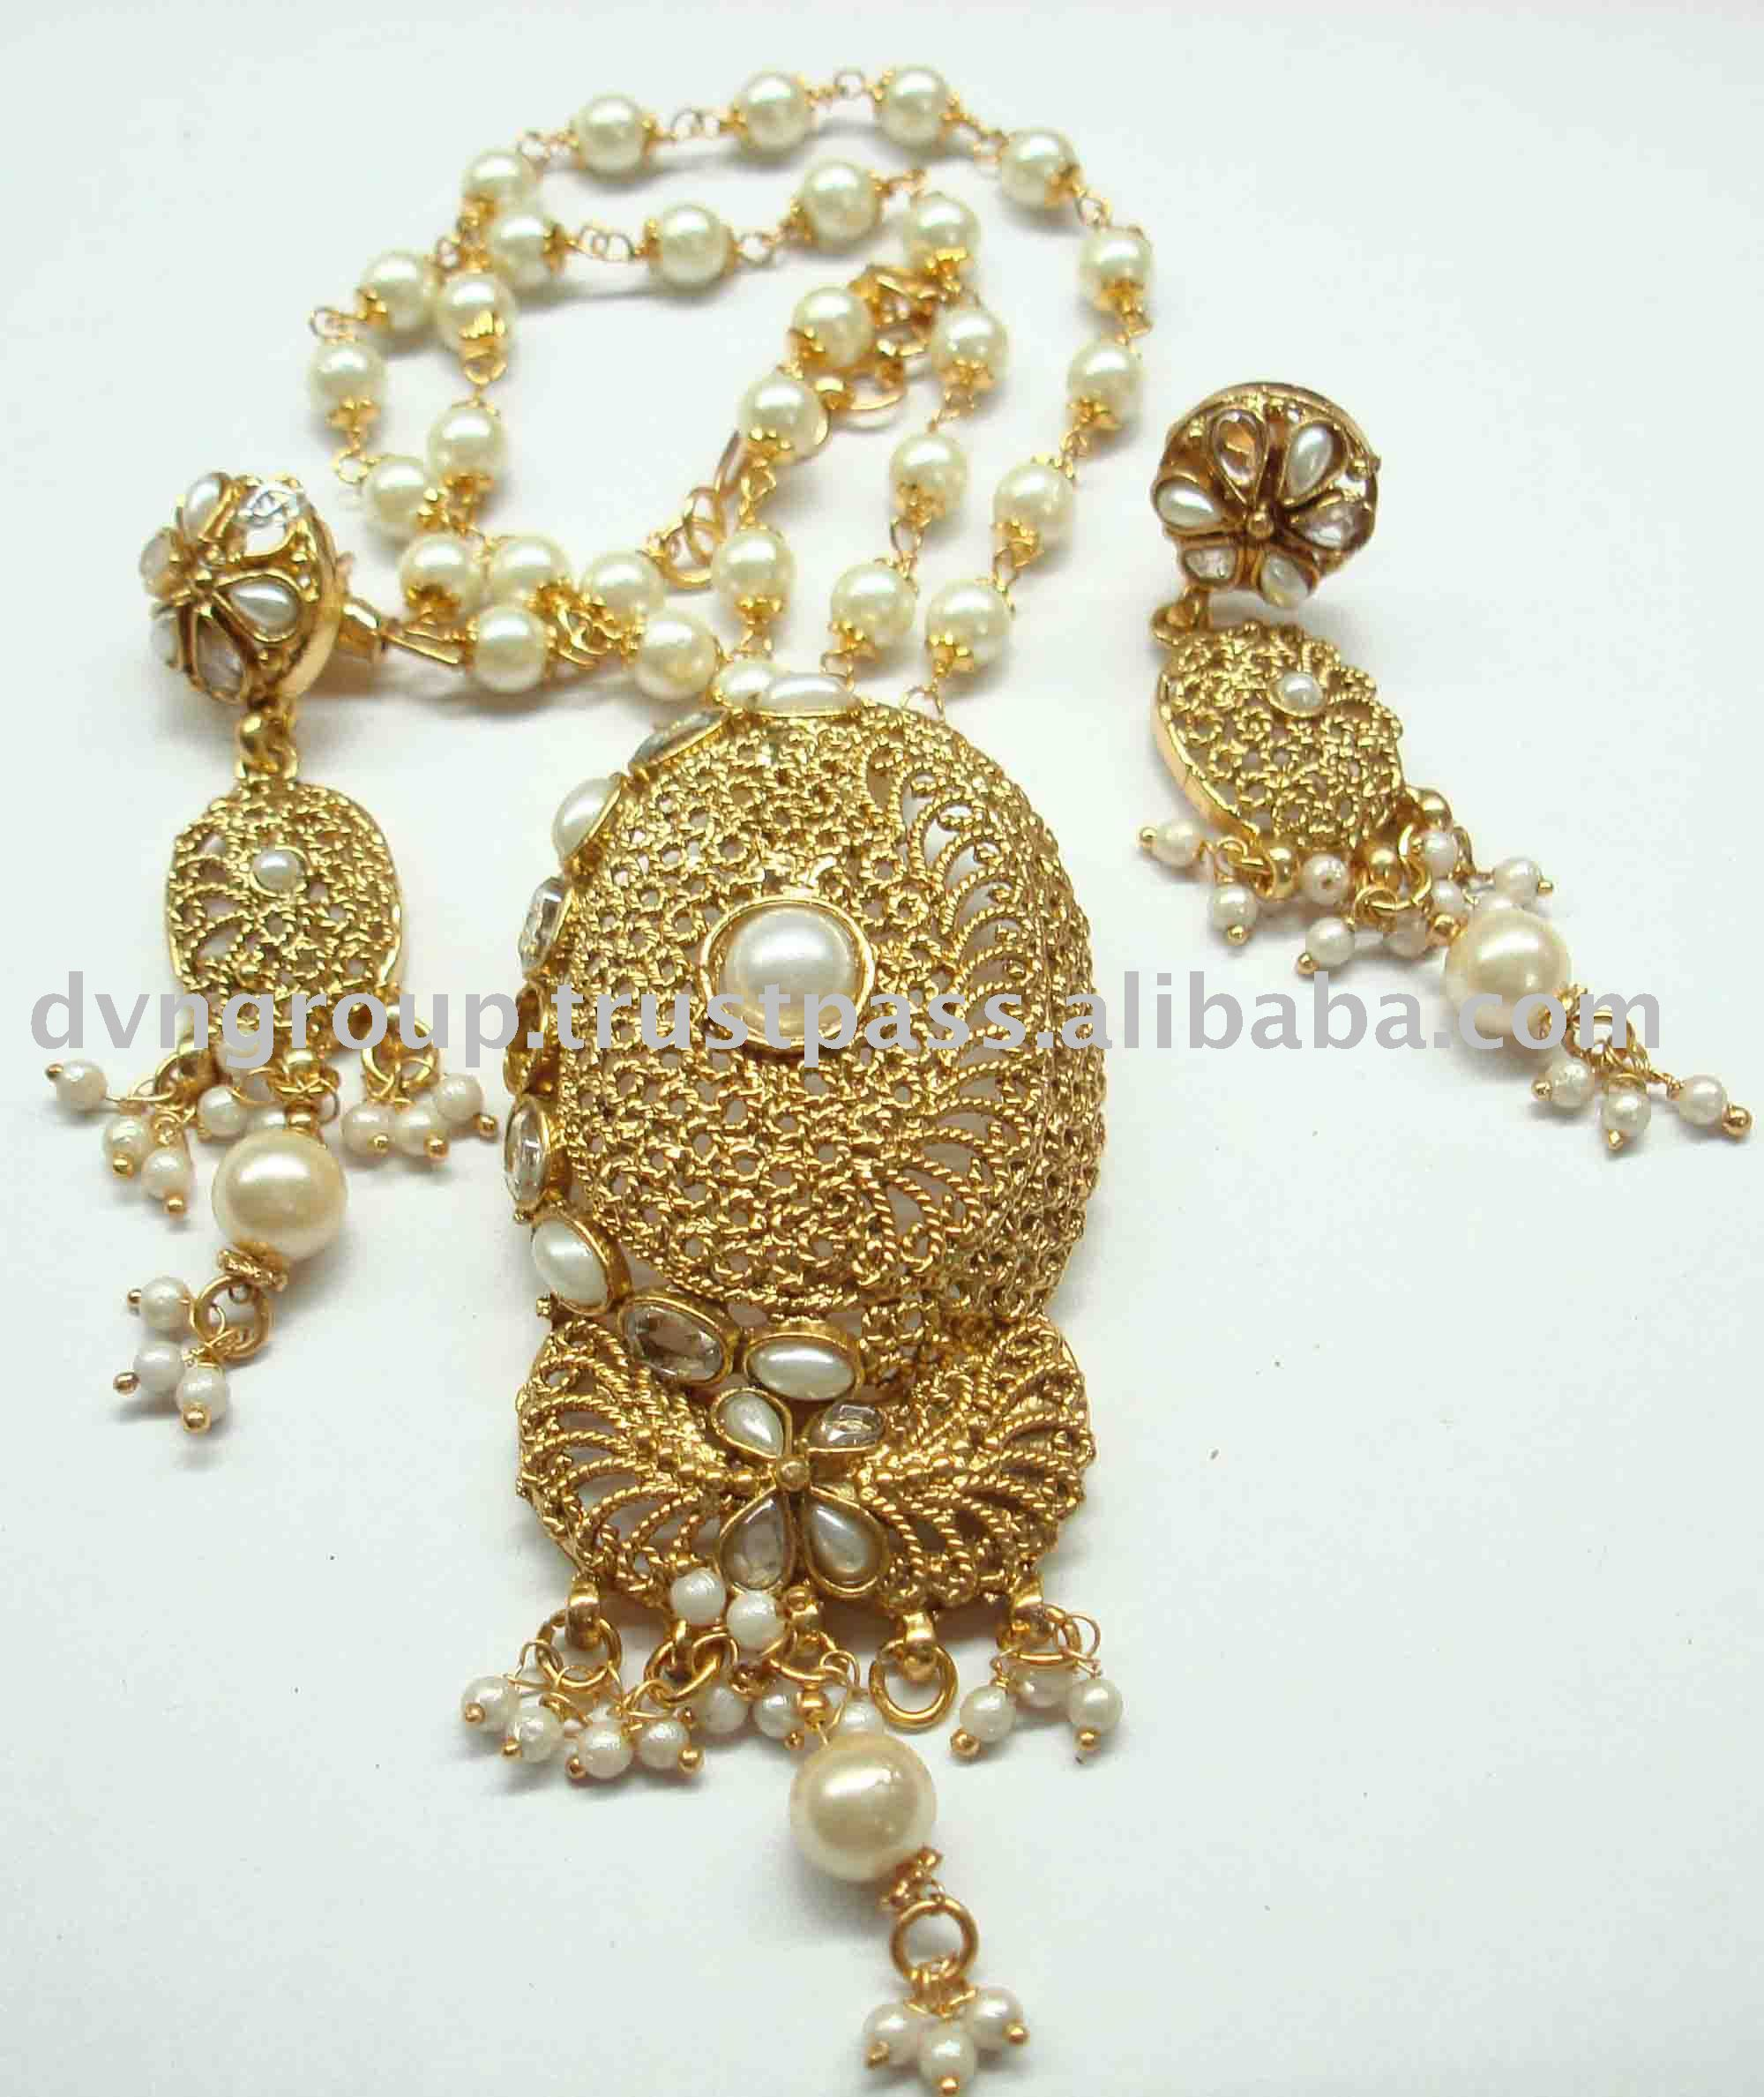 wholesale jewellery indian shop earrings royal by l home jewels kundan jewelry maya fashion eva